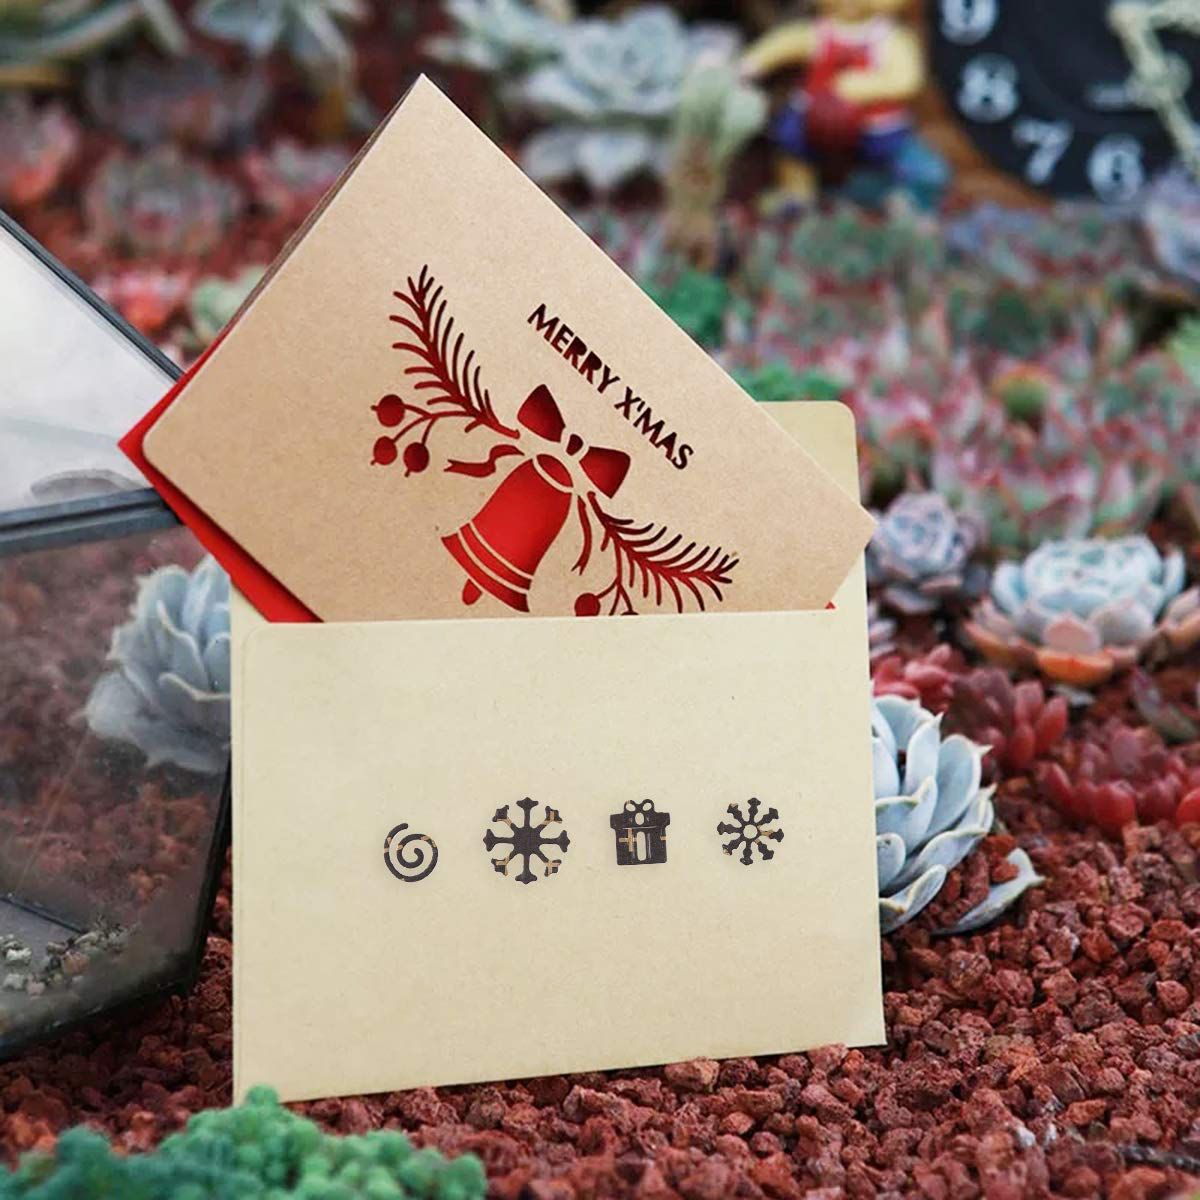 Christmas Tree Carbon Steel Cutting Craft Dies for papercraft Greeting Card Invitation Letter Making Decor Mold Scrapbooking Album Book Decoration Embossing Stencil